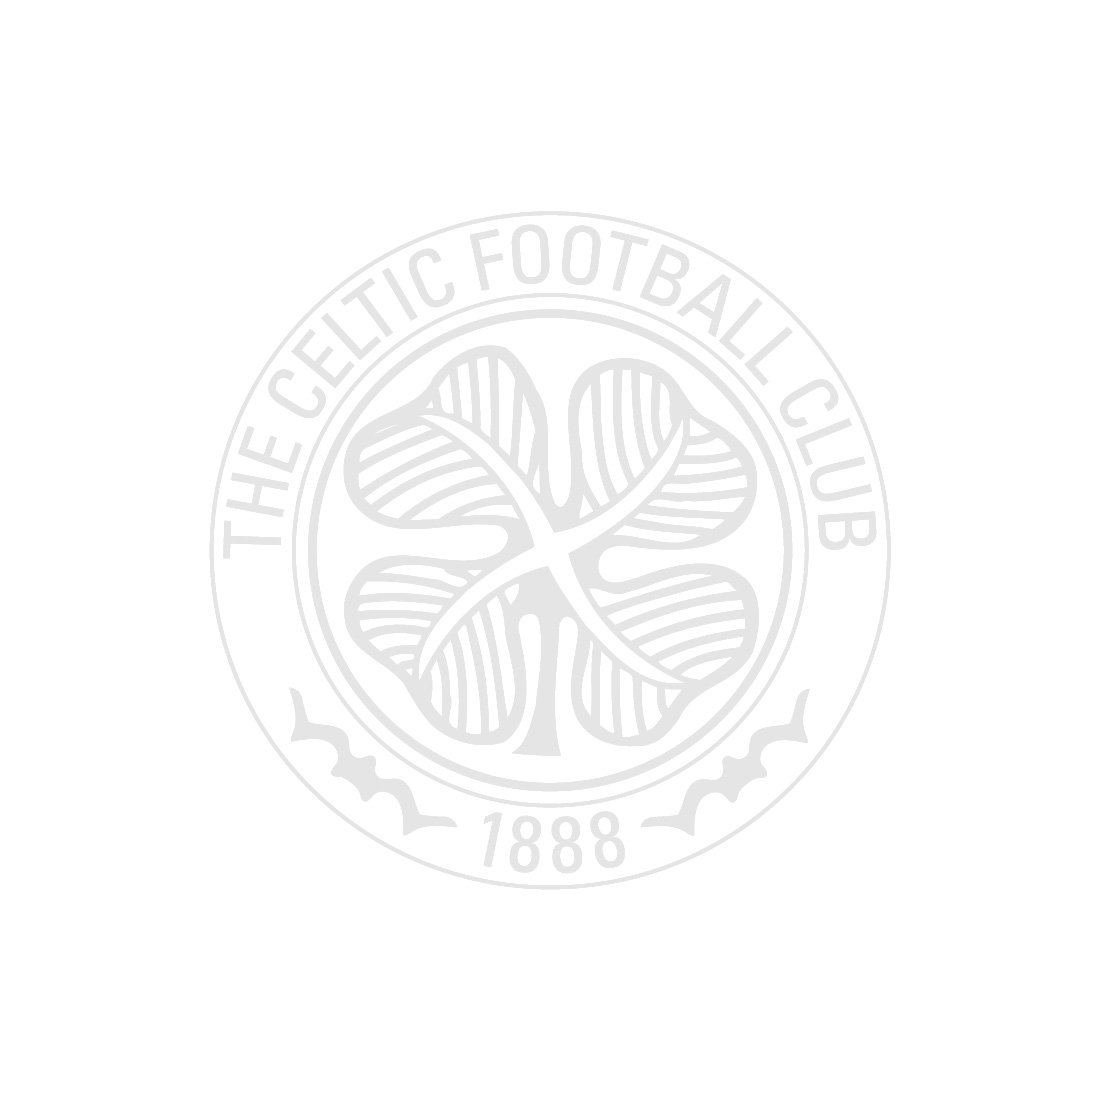 Celtic Crest Textured Skills Football